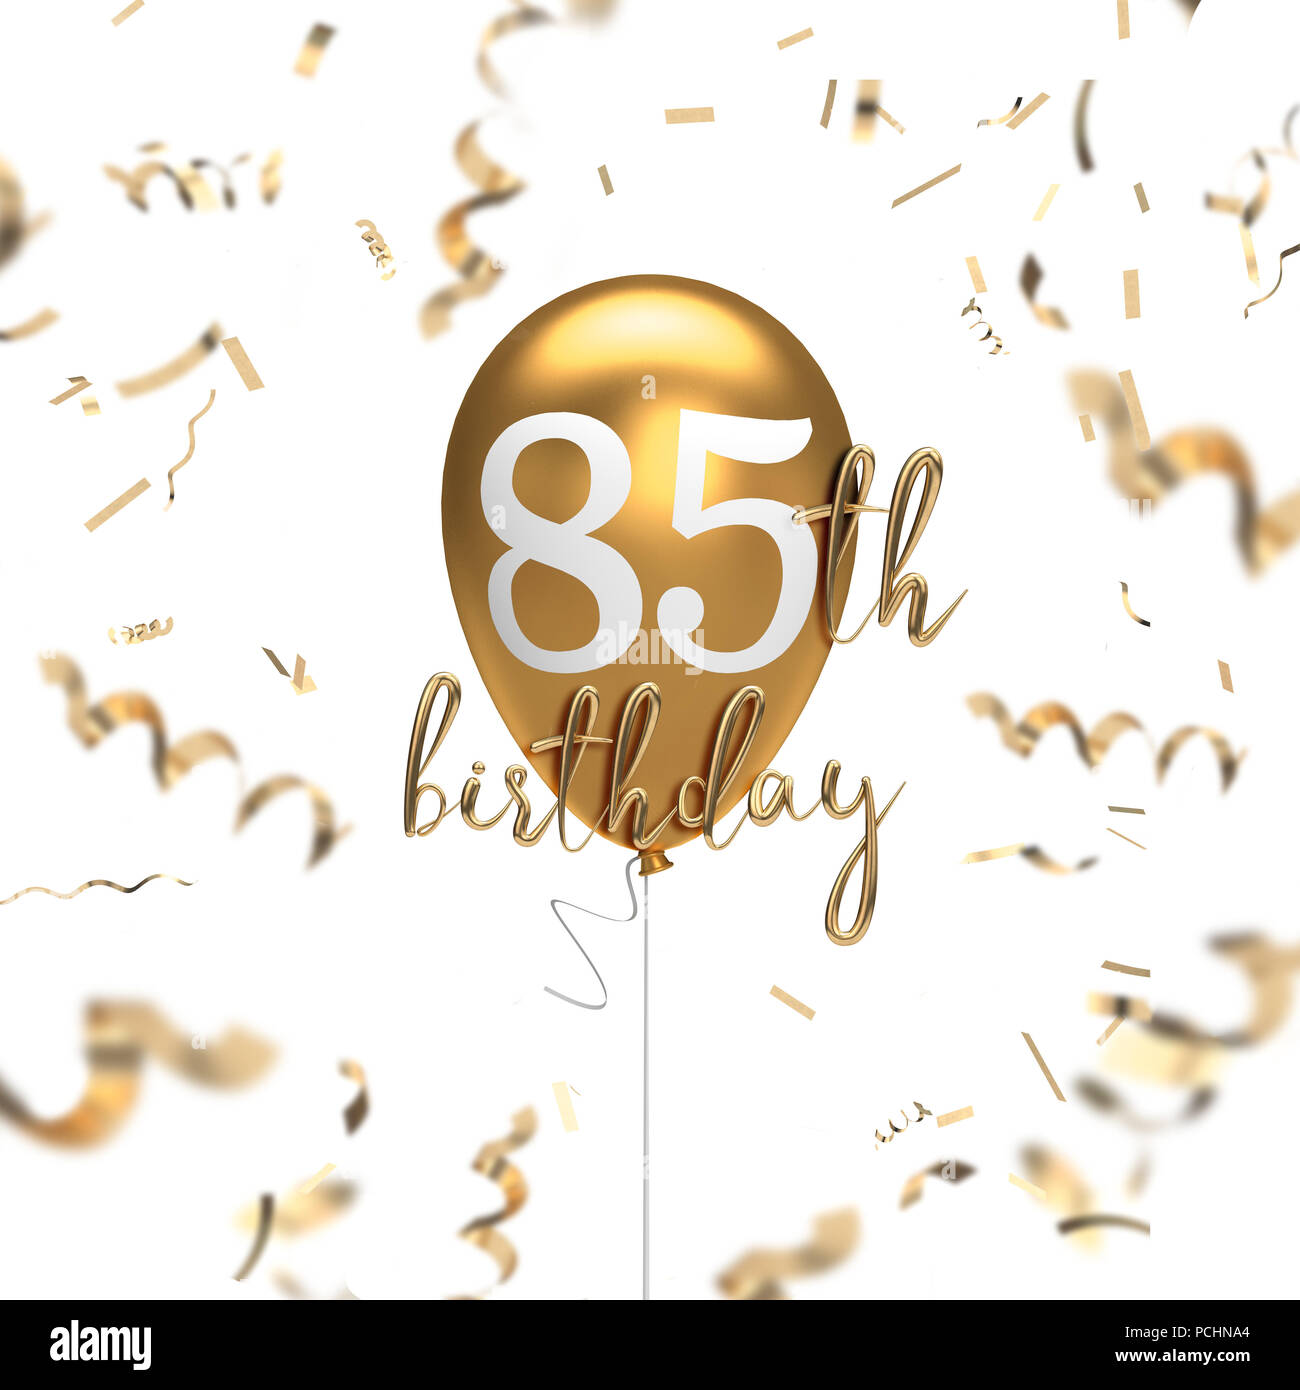 Happy 85th Birthday Gold Balloon Greeting Background 3d Rendering